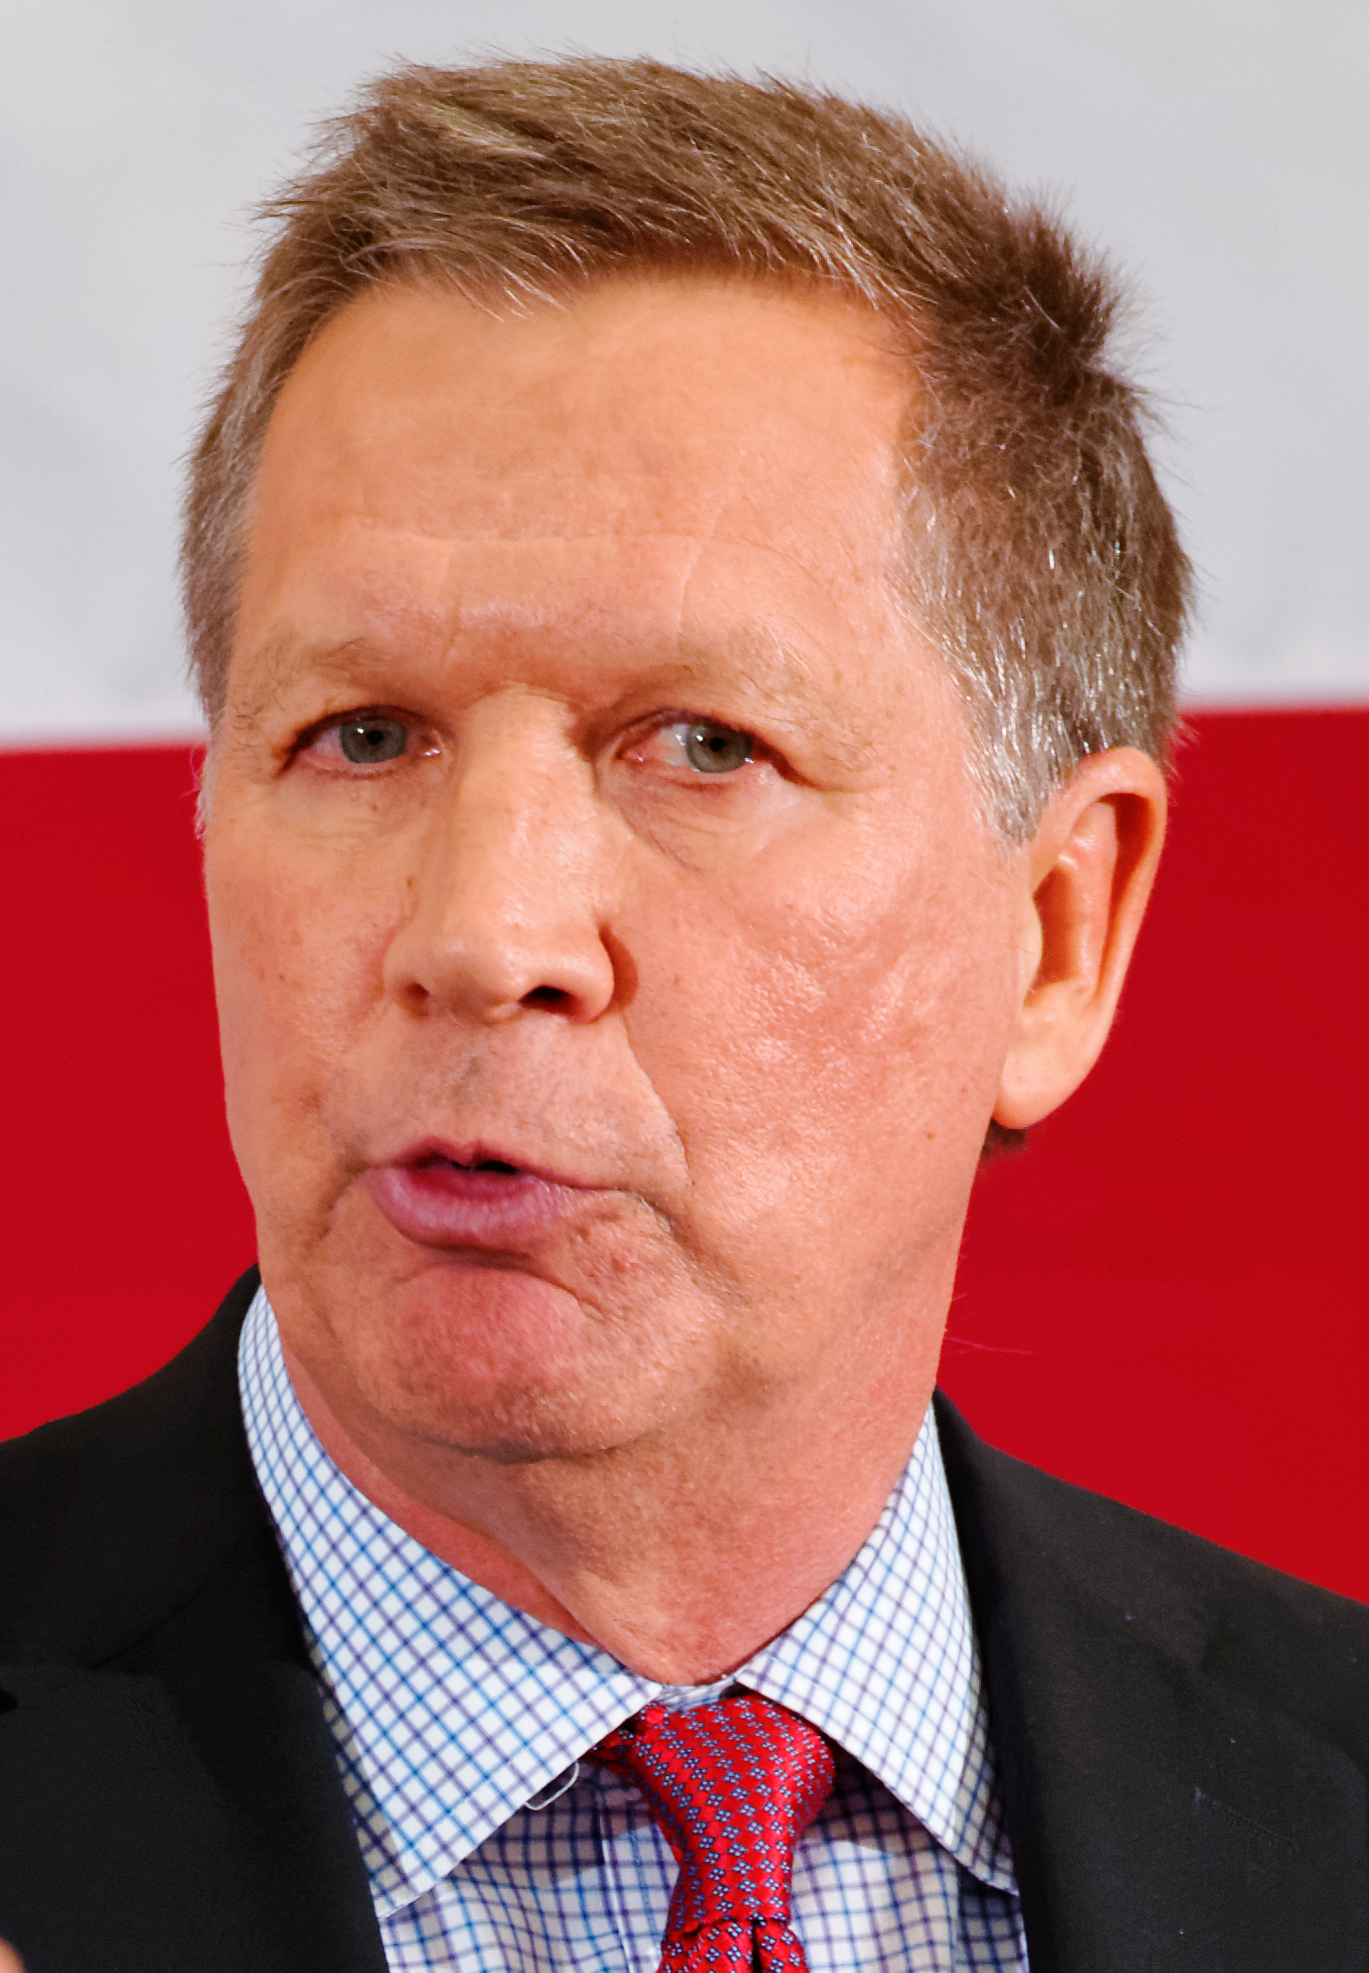 Governor of Ohio John Kasich at FITN in Nashua, NH by Michael Vadon 02 (cropped).jpg